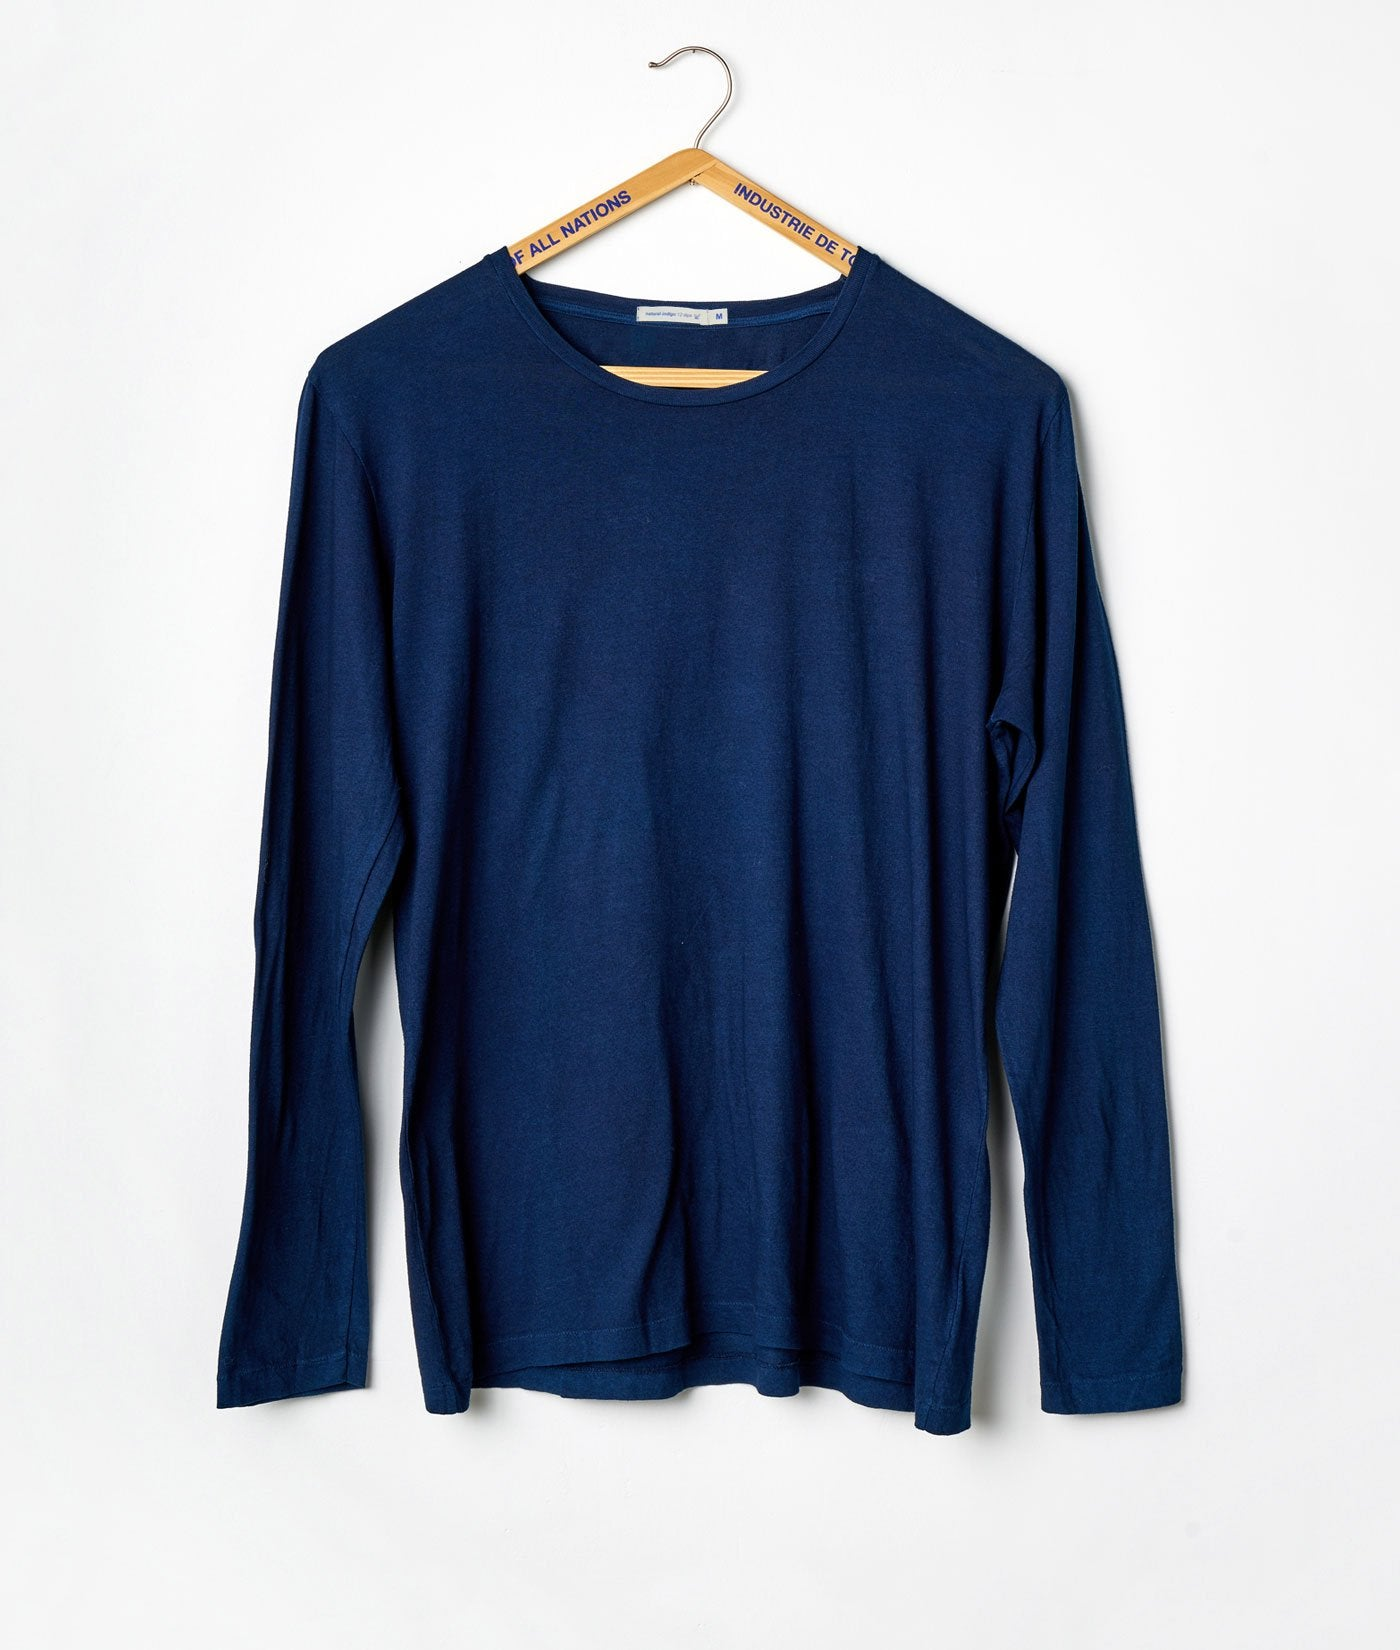 Industry of All Nations Organic Cotton Long Sleeve Crewneck Shirt Indigo 12